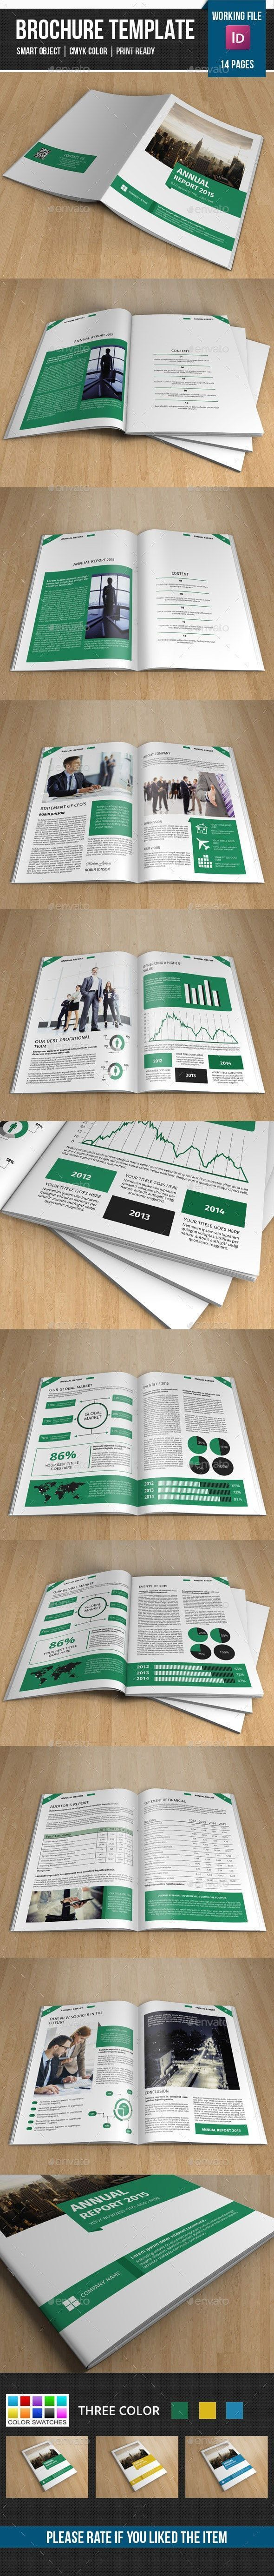 Annual Report Brochure-V233 #AD #Report, #sponsored, #Annual, #Brochure #annualreports Annual Report Brochure-V233 #AD #Report, #sponsored, #Annual, #Brochure #annualreports Annual Report Brochure-V233 #AD #Report, #sponsored, #Annual, #Brochure #annualreports Annual Report Brochure-V233 #AD #Report, #sponsored, #Annual, #Brochure #annualreports